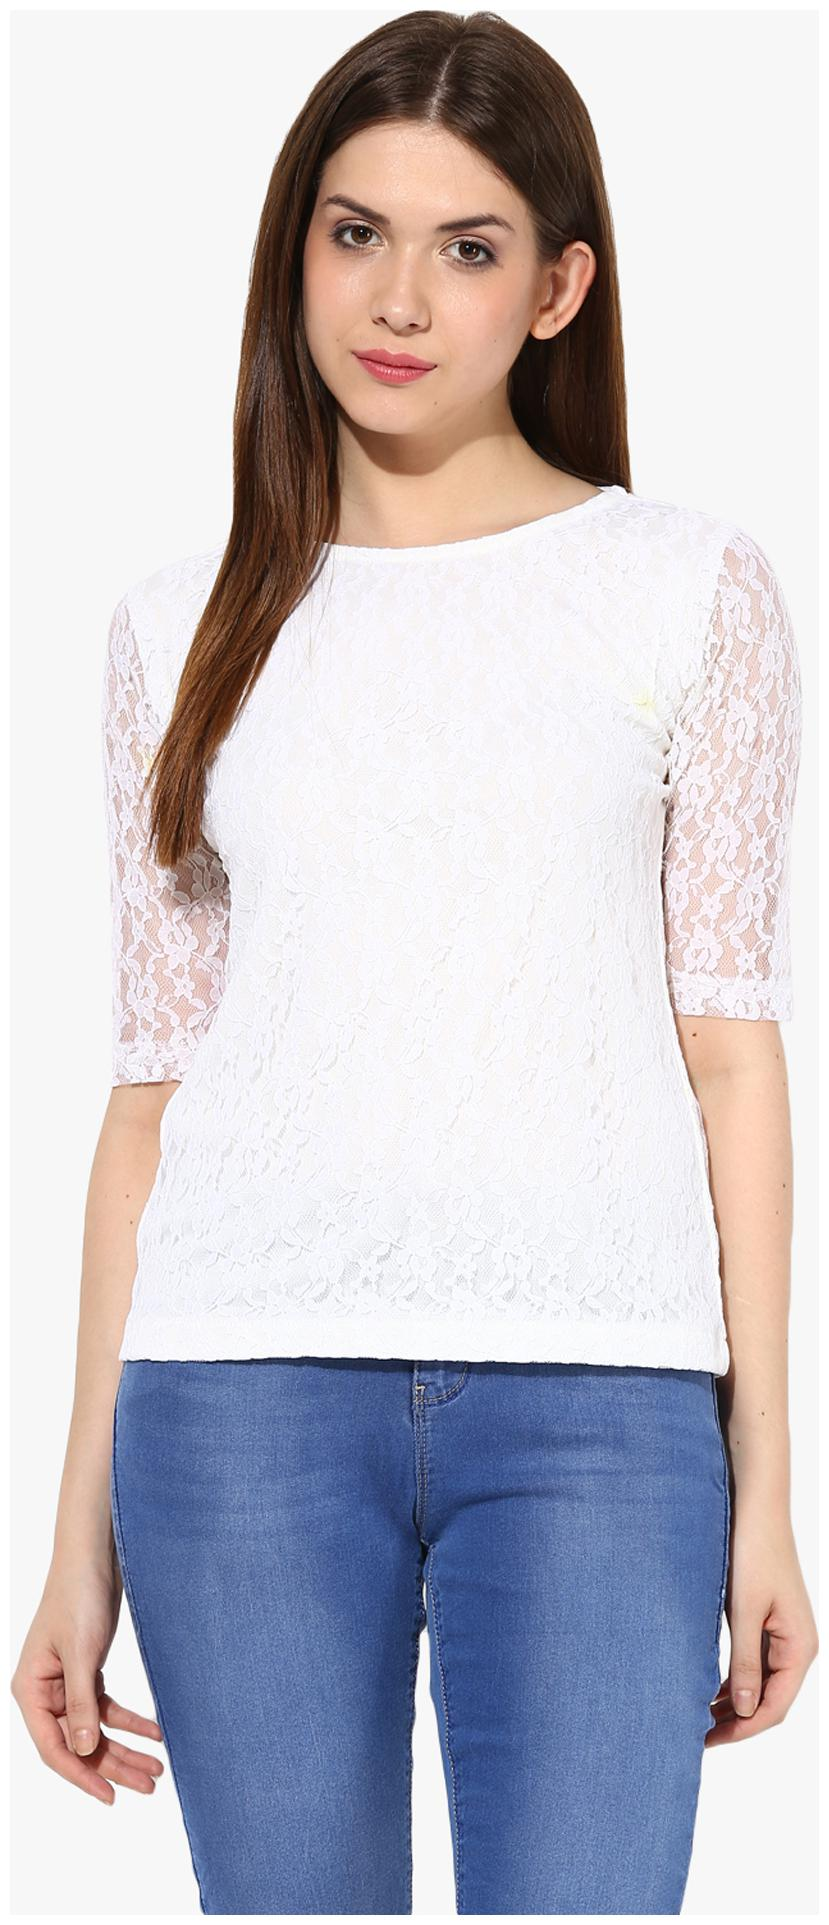 Miss Chase Women's White Round Neck 3/4th Sleeves Lace Top by Miss Chase